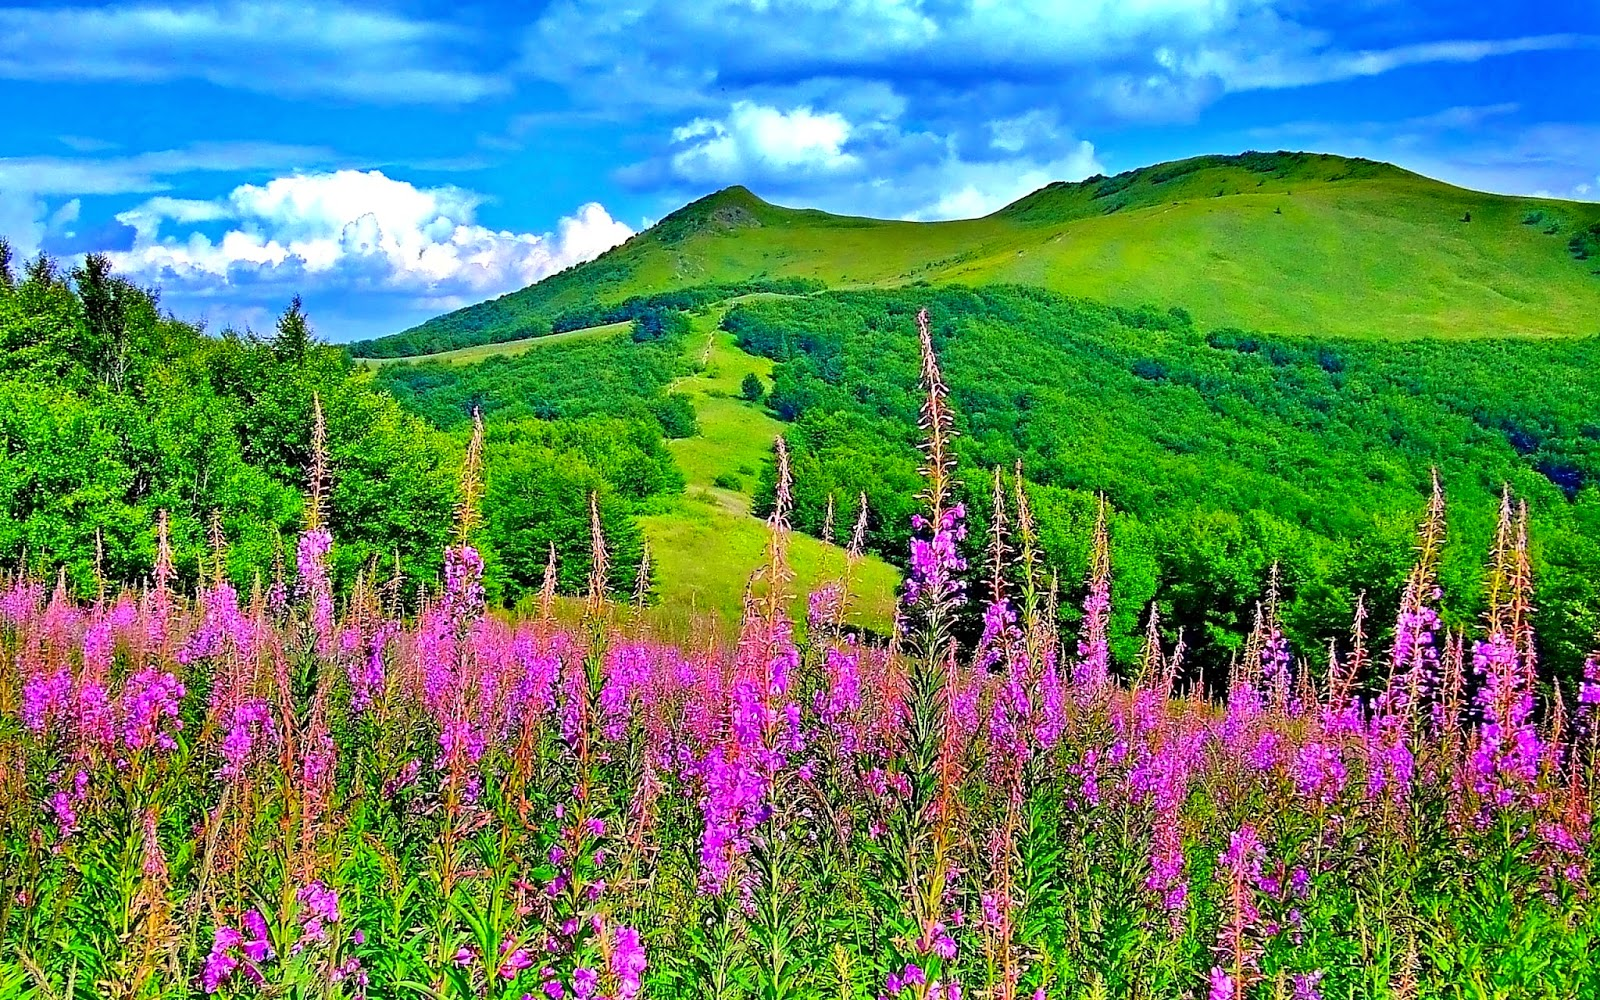 Good Wallpaper High Quality Scenery - 2018828%2BLovely%2BSpring%2BLandscape%2BHD%2BWallpaperz%2B189892  You Should Have_217844.jpg